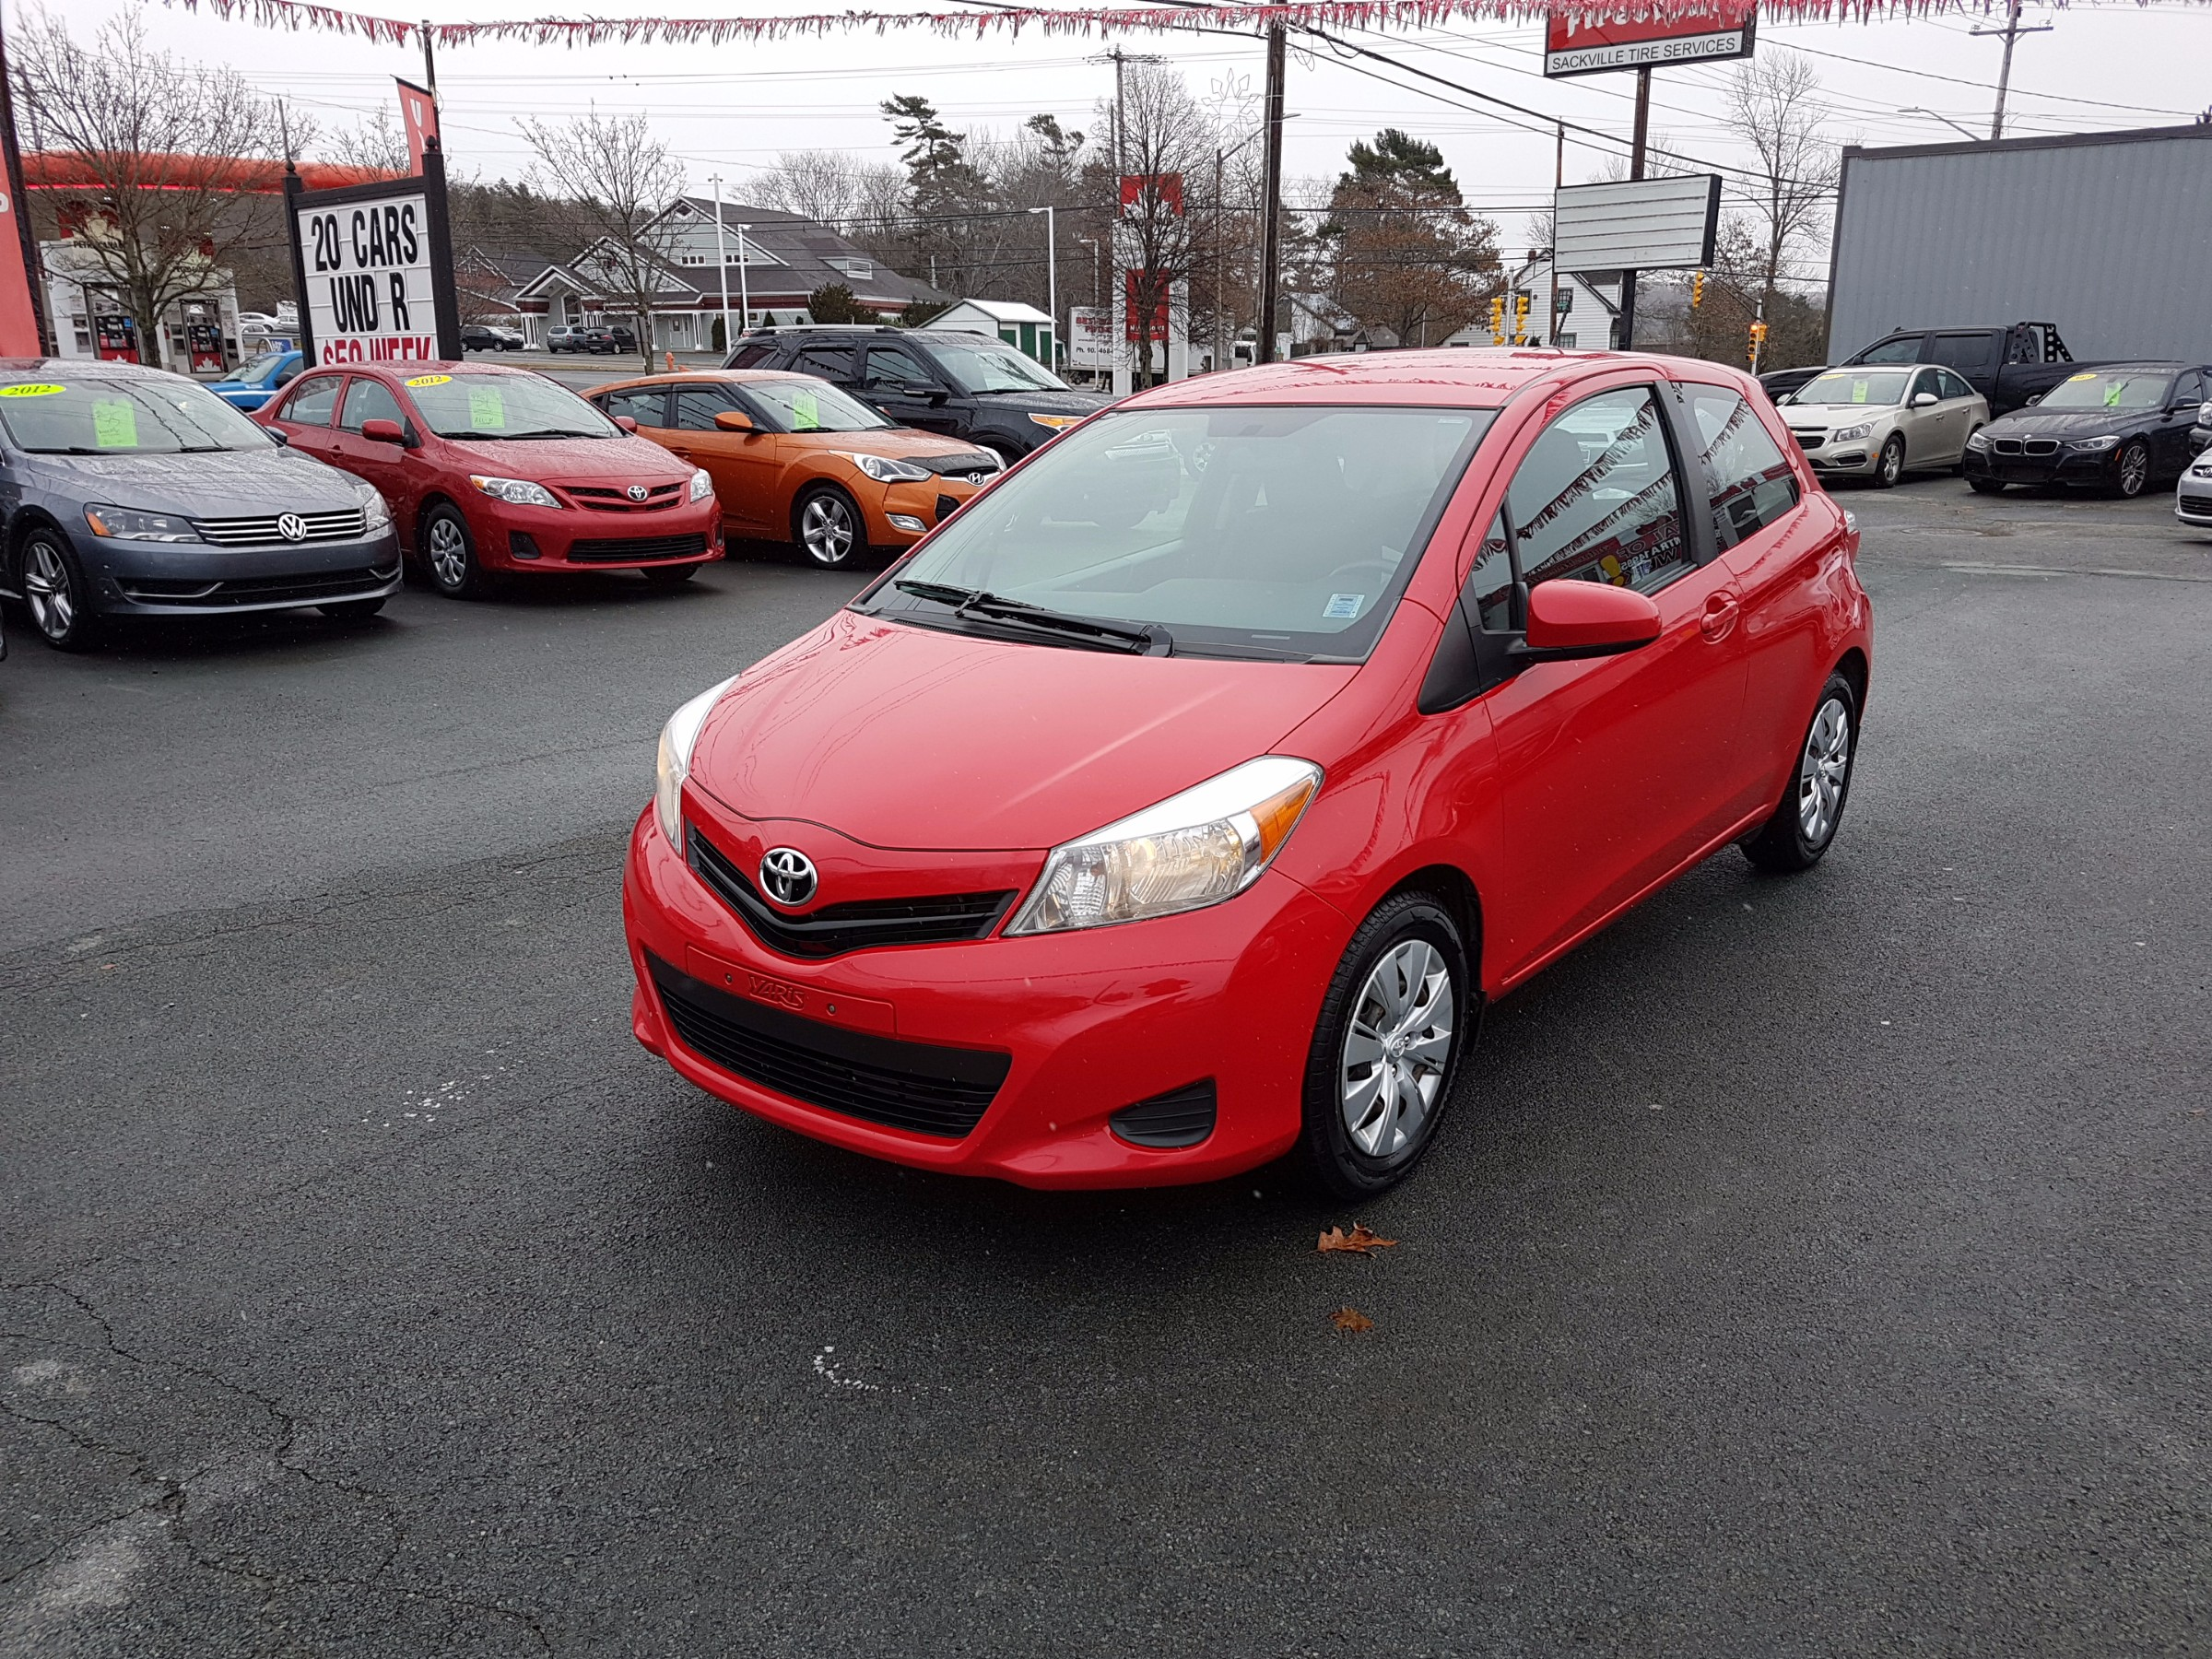 Used Toyota Yaris For Sale Halifax, NS - CarGurus